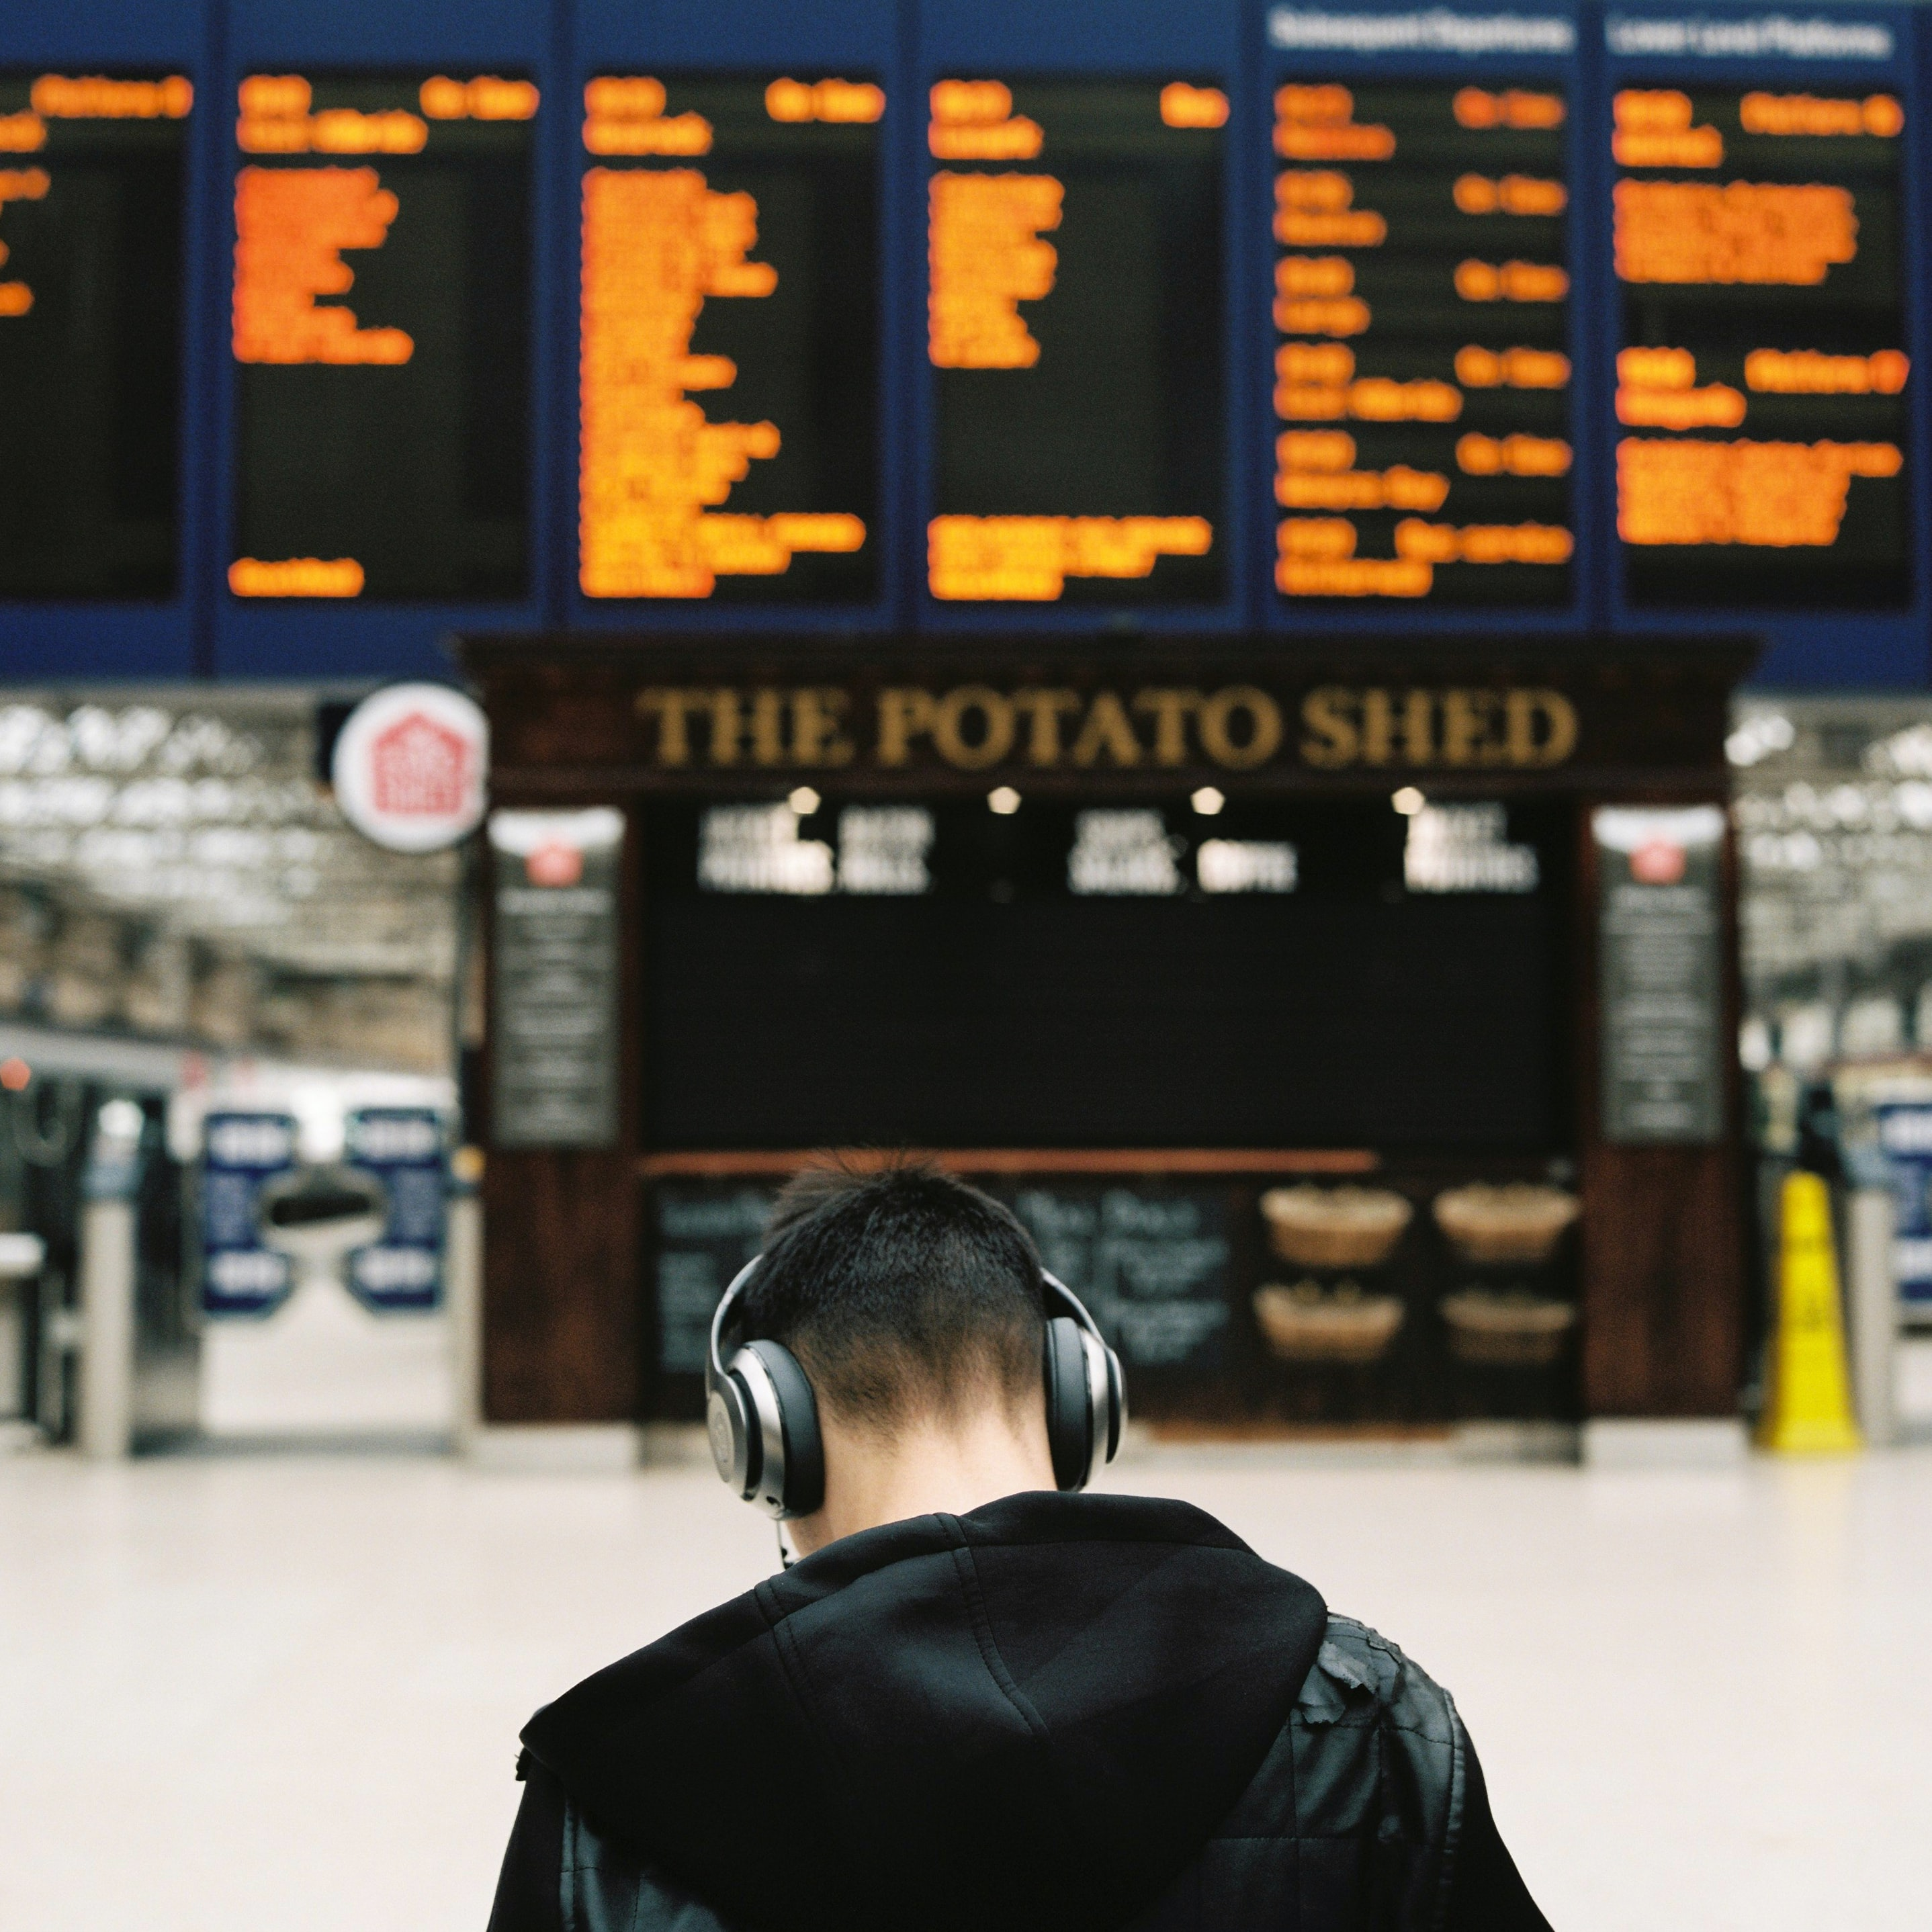 Back of a person with headphones in the Glasgow train station near the arrivals/departures board